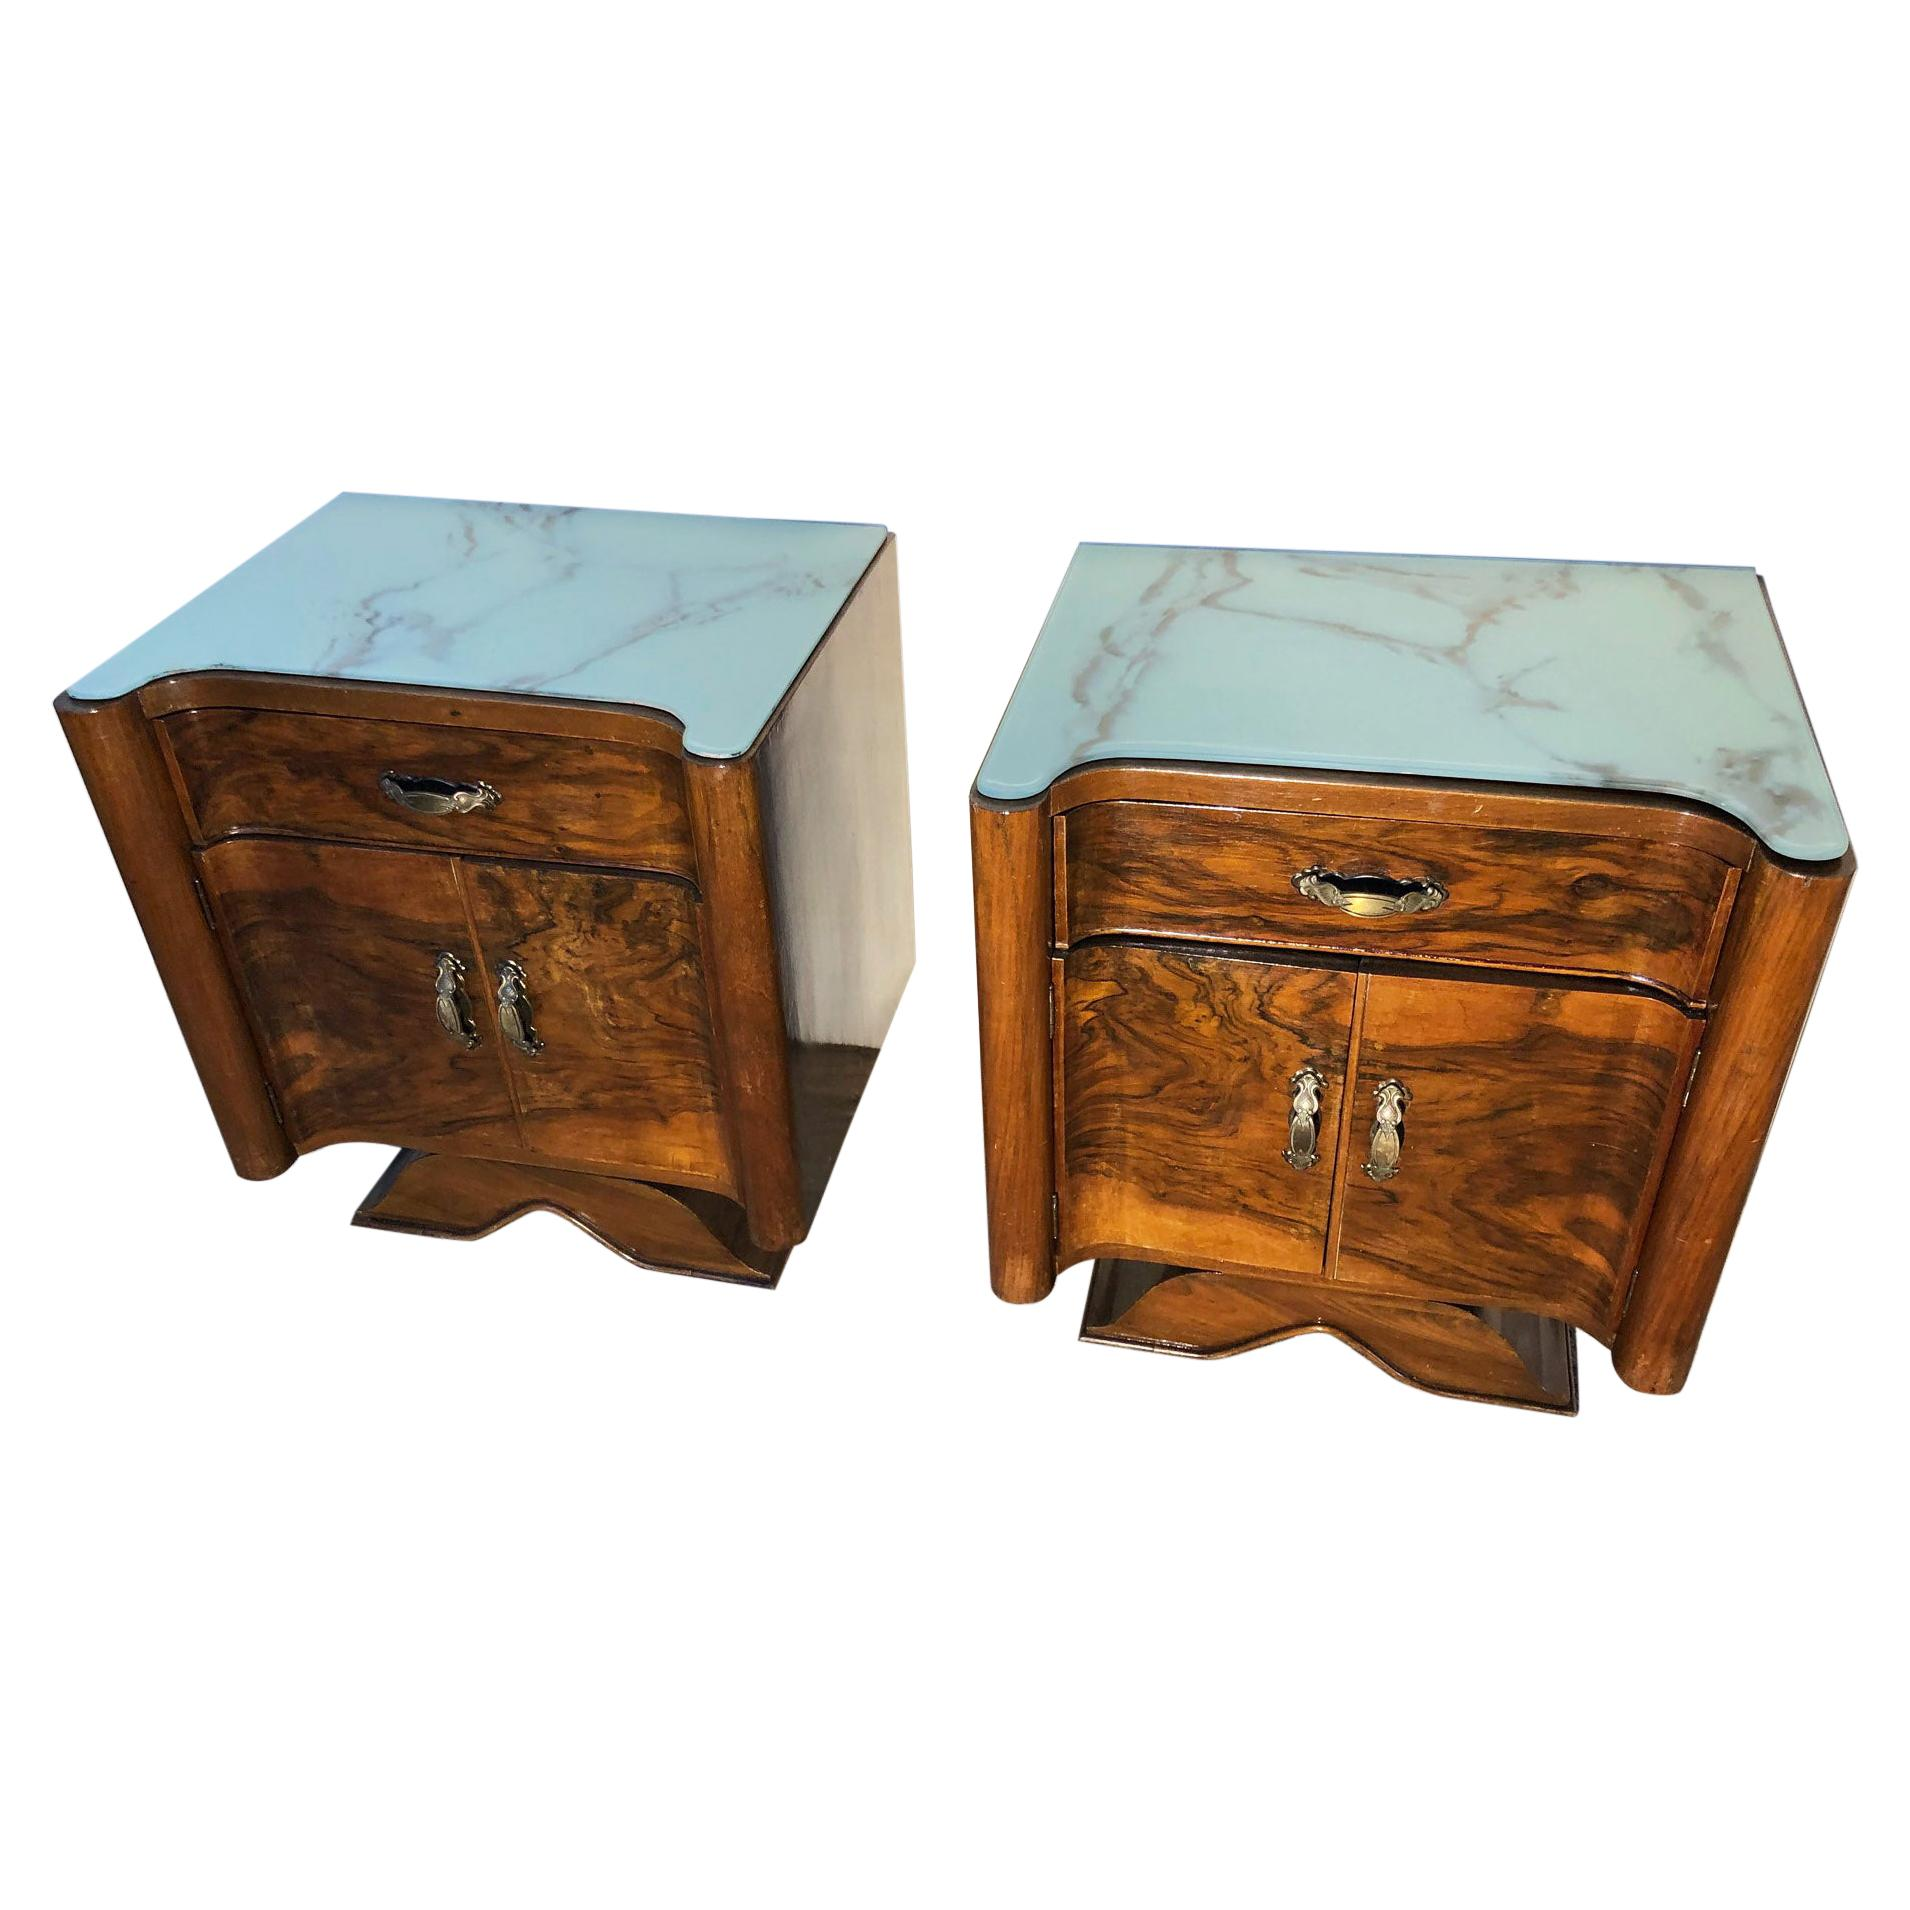 1920's Pair of Original Italian Decò Nightstands Walnut Marbled Glass